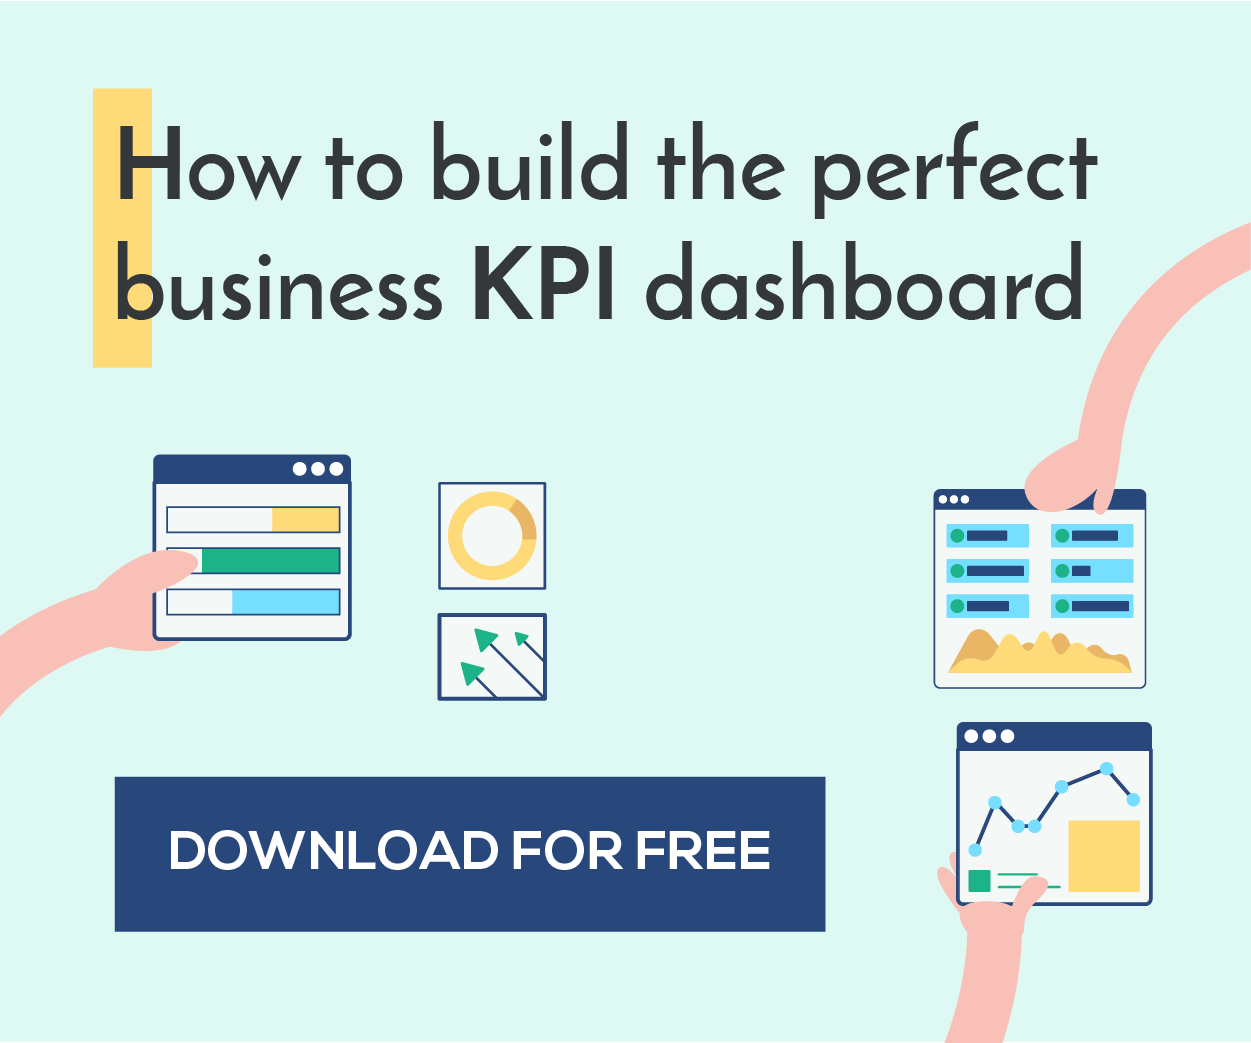 Download our free guide to building a KPI dasboard